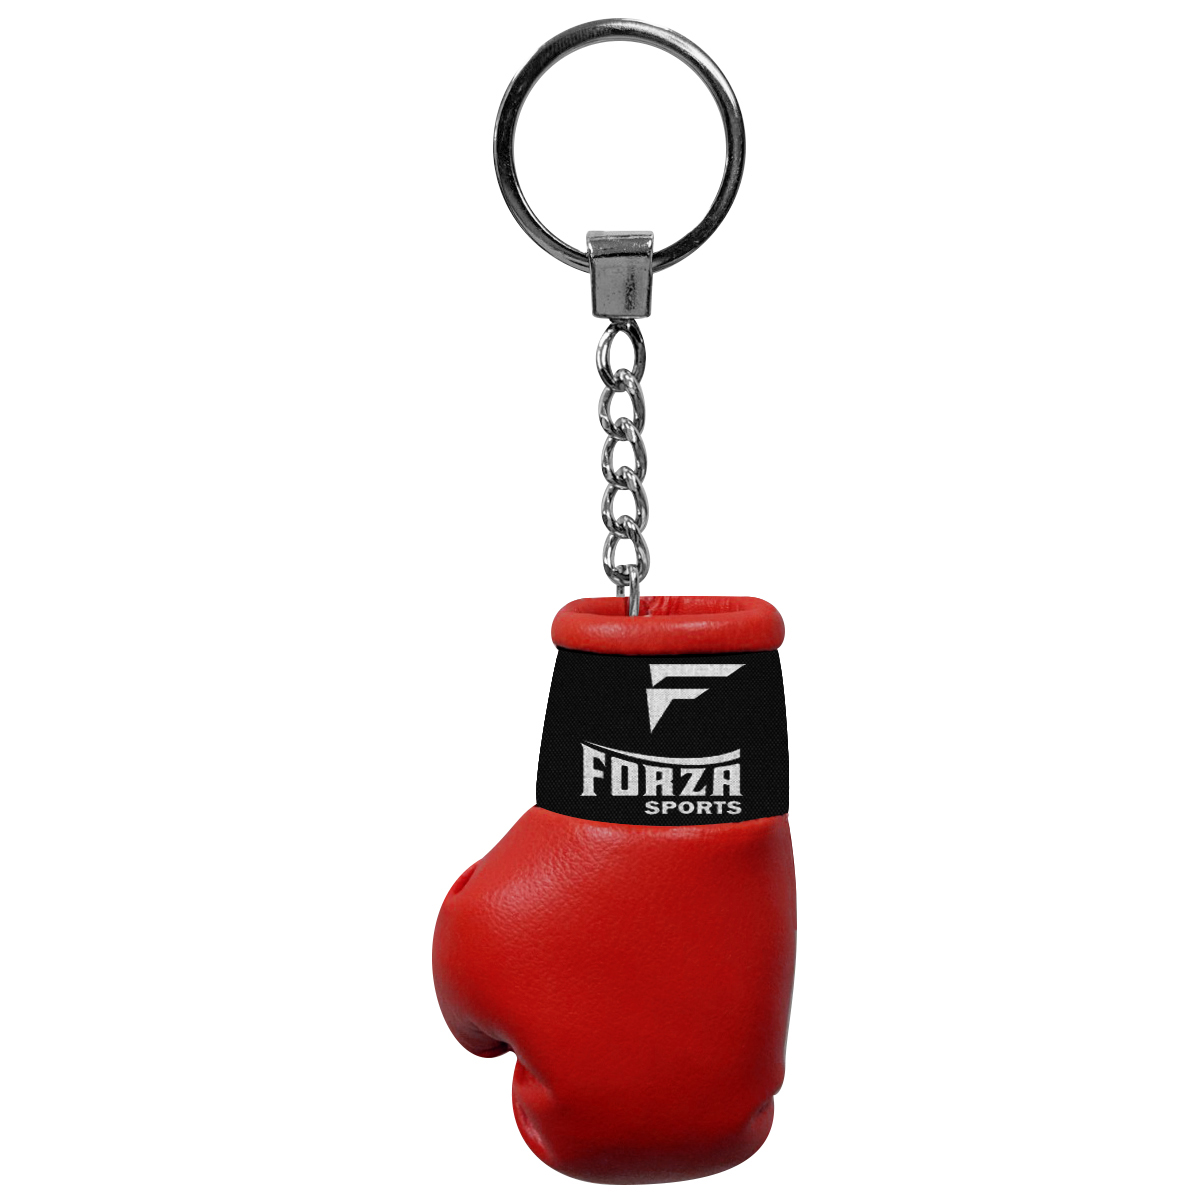 Cleto-Reyes-Traditional-Lace-Up-Boxing-Gloves-with-Forza-Handwraps-and-Keychain thumbnail 7